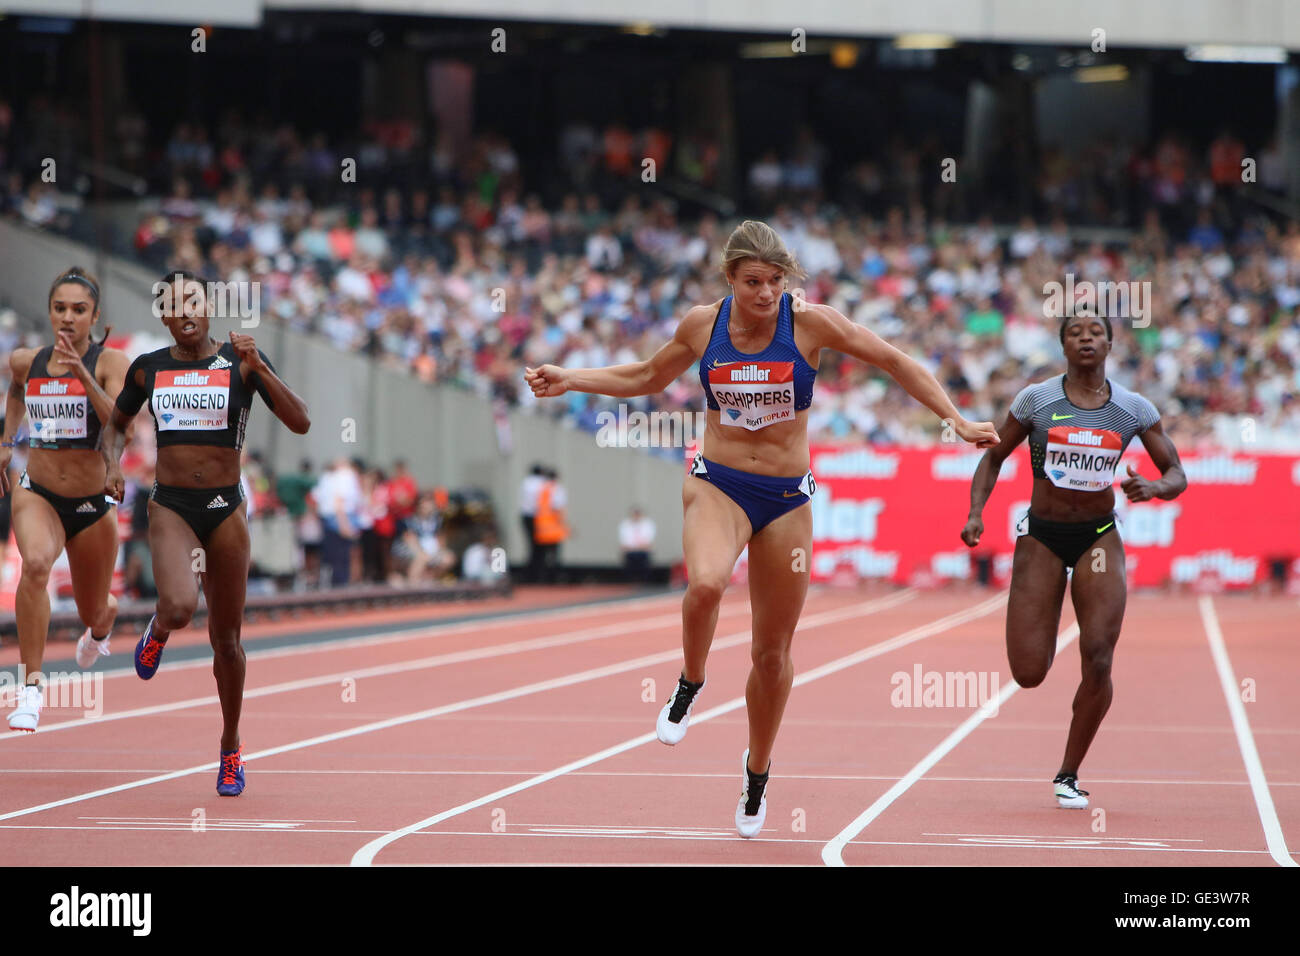 London, UK. 23rd July 2016. London, UK. IAAF Diamond Leauge Anniversary Games. Dafne Schippers takes first place - Stock Image